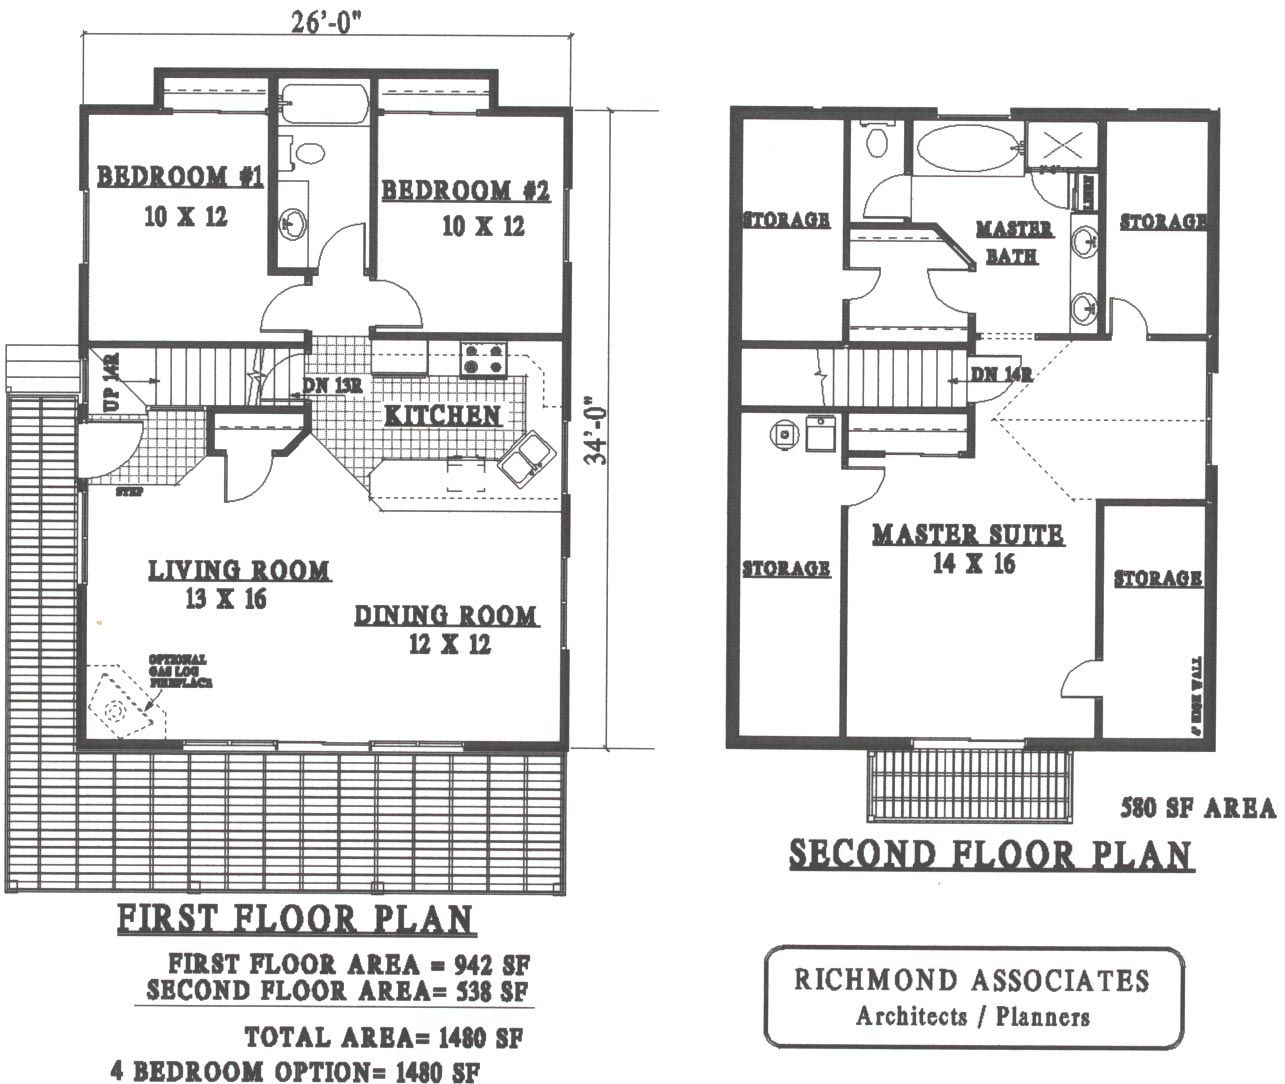 Simple small house floor plans search here for unique for Simple cabin plans with loft